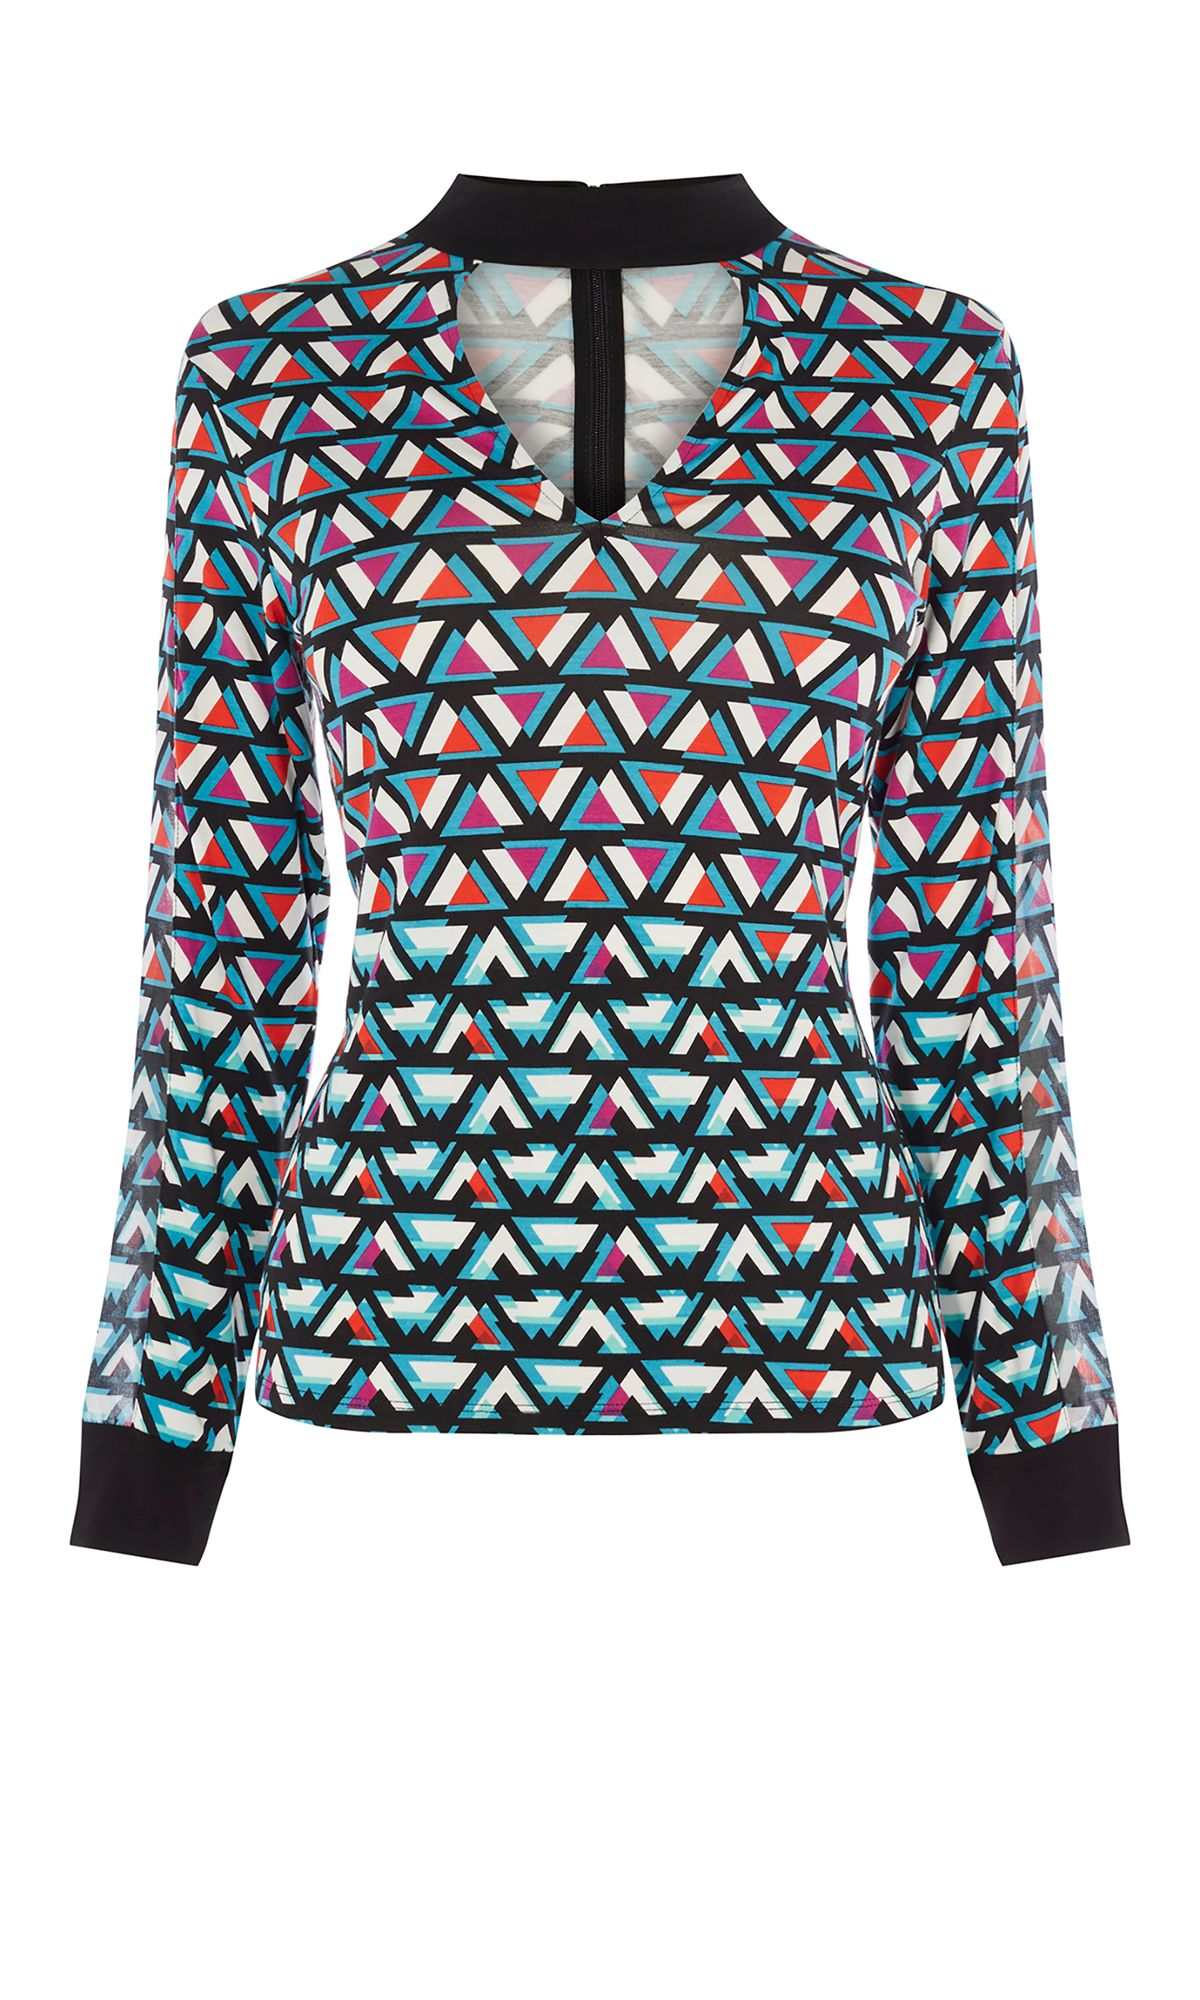 Karen Millen Geometric Choker Blouse, Multi-Coloured